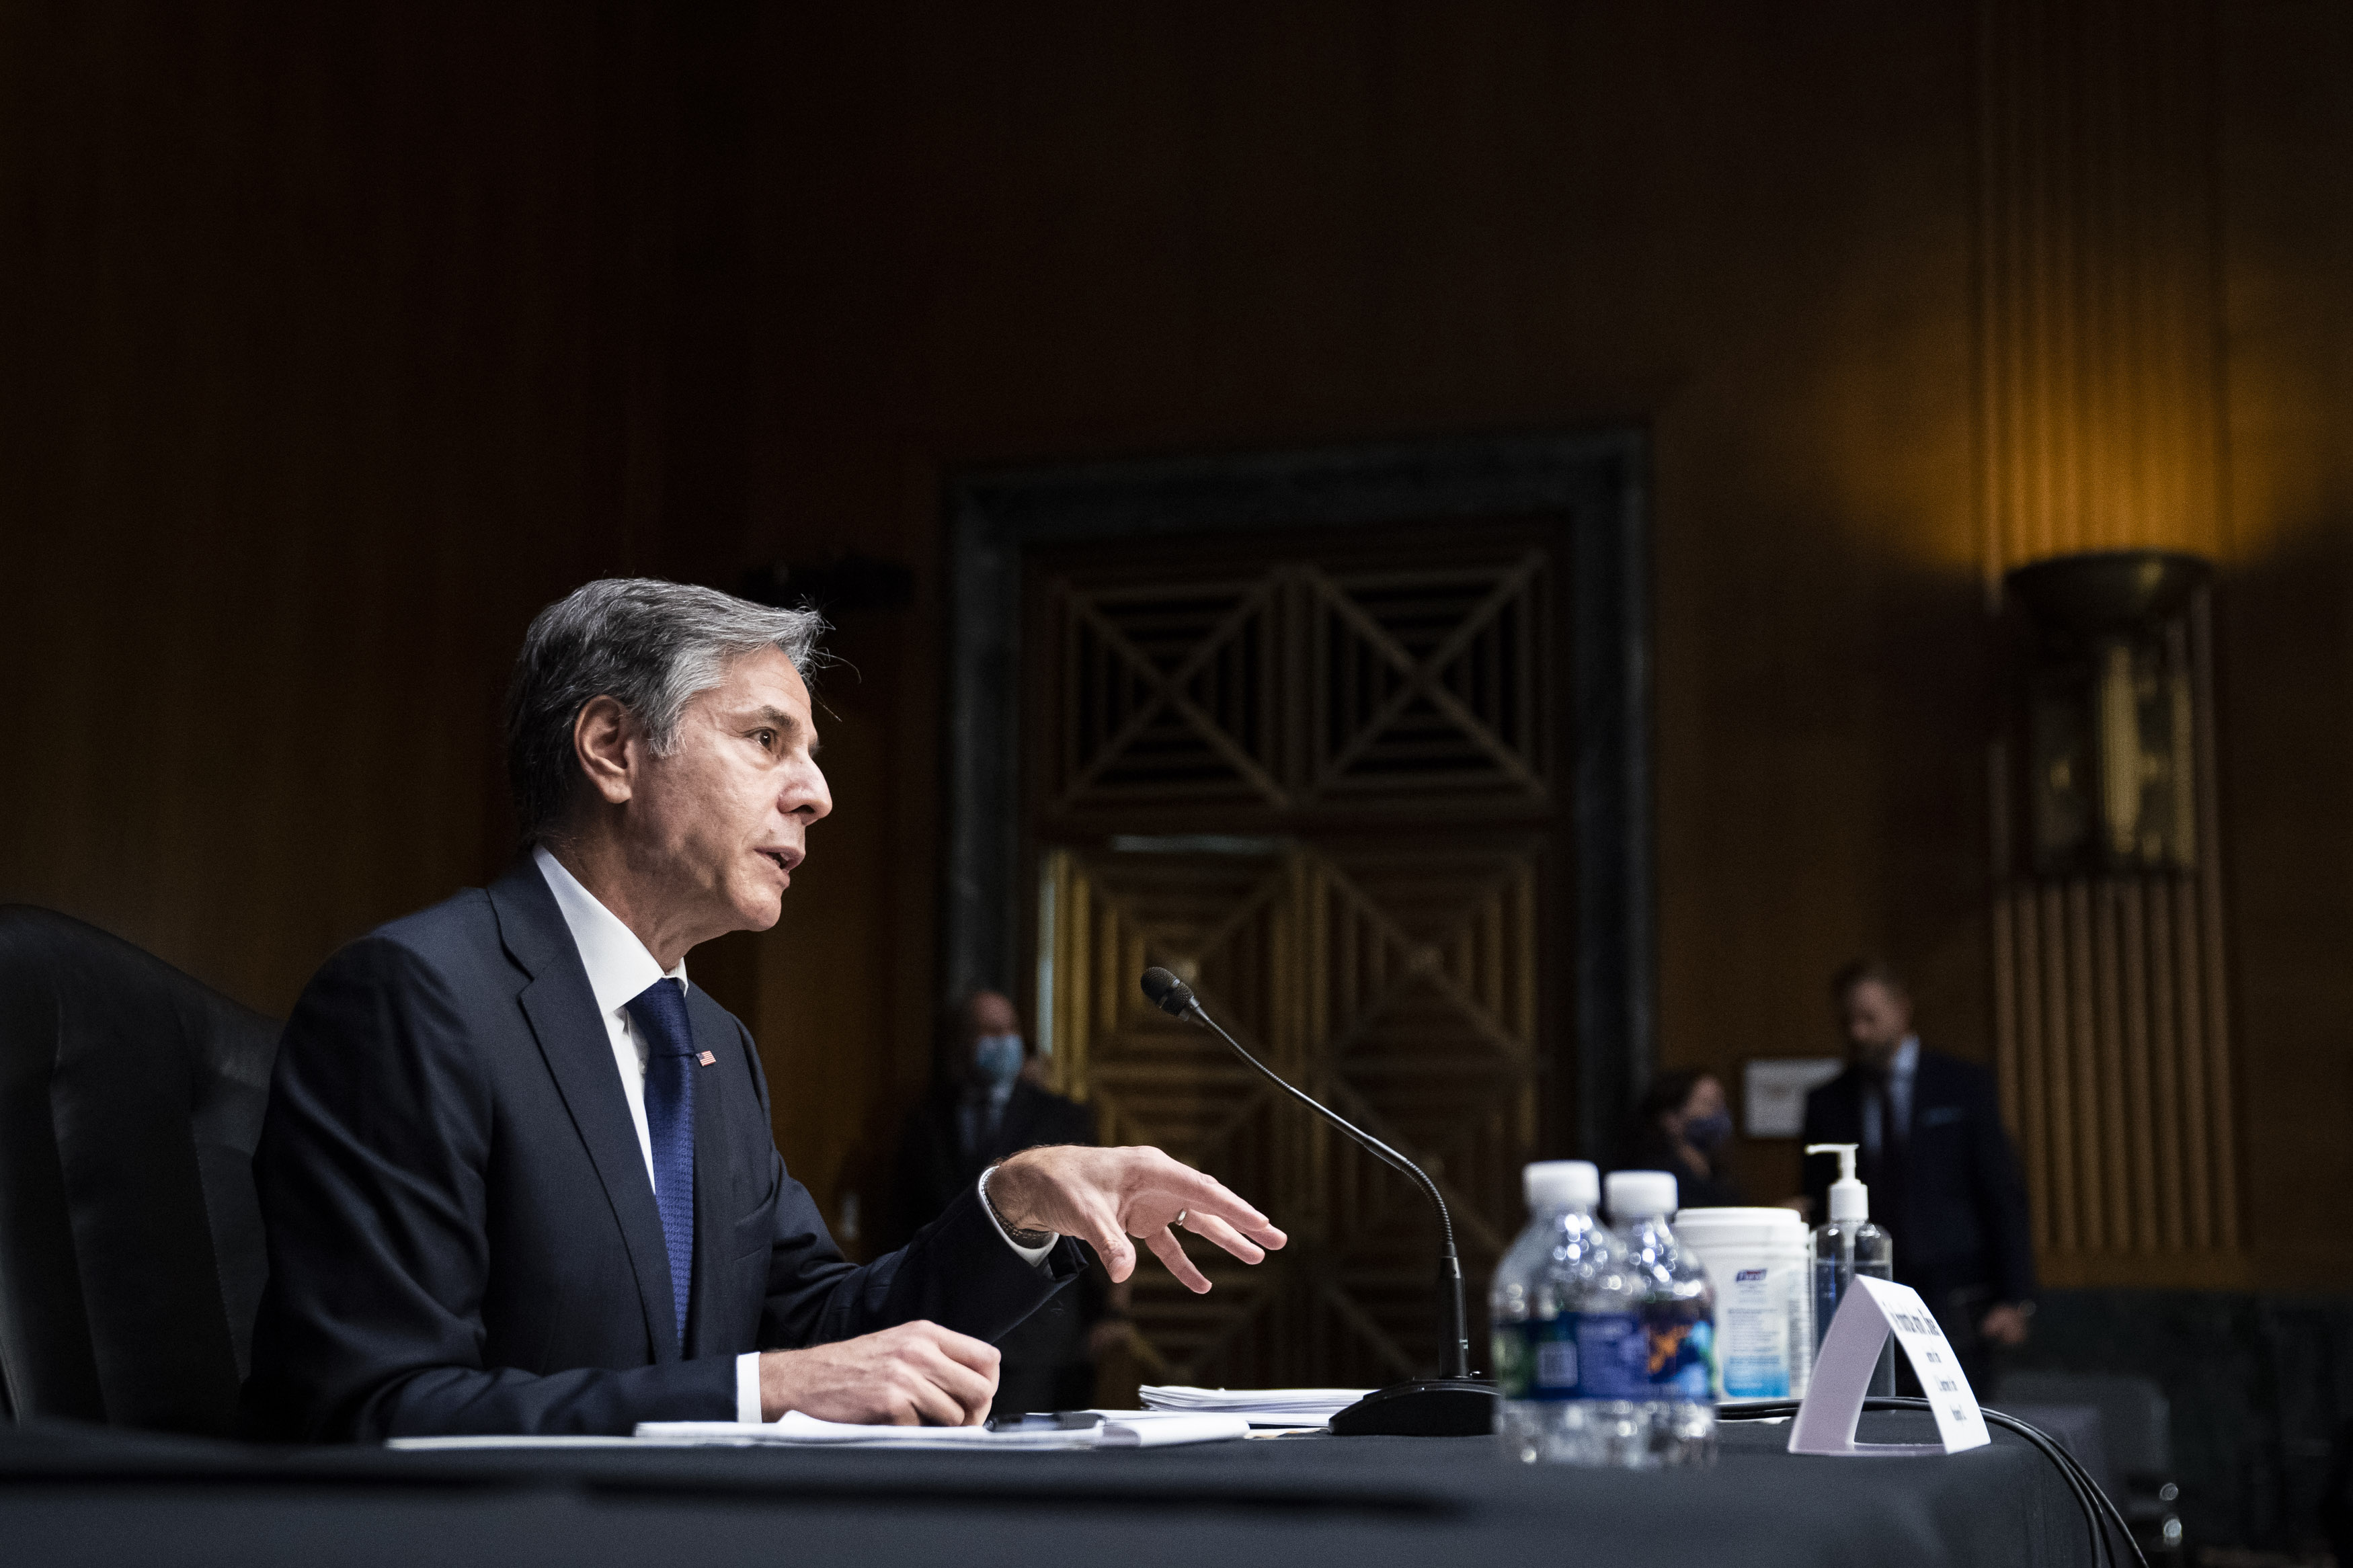 U.S. Secretary of State Antony Blinken testifies during a Senate Foreign Relations Hearing to examine the United States withdrawal from Afghanistan on Capitol Hill on September. 14, 2021 in Washington, DC. (Photo by Jabin Botsford - Pool/Getty Images)